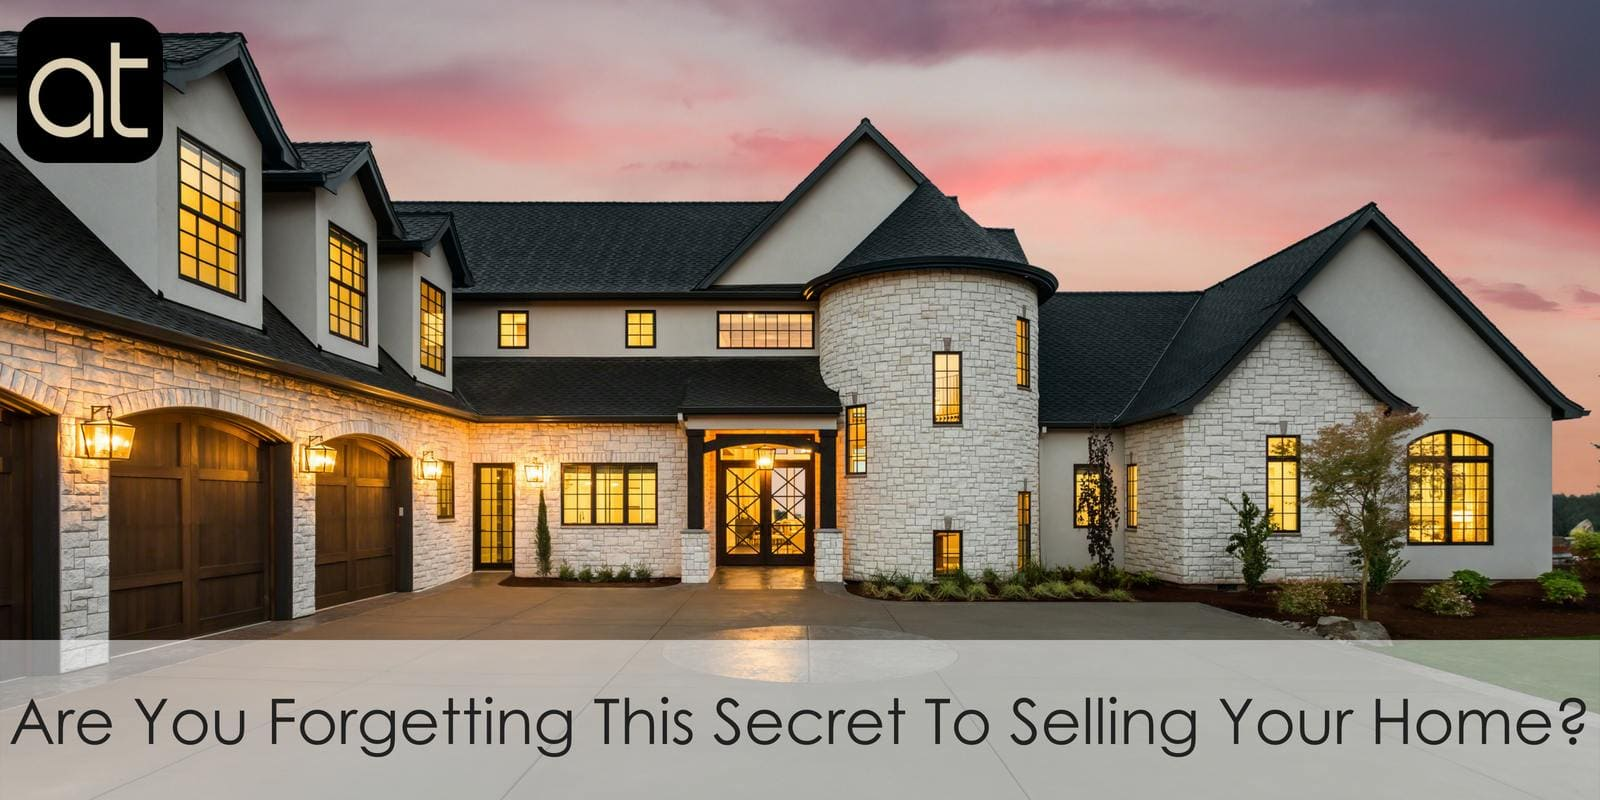 Are You Forgetting This Secret To Selling Your Home?